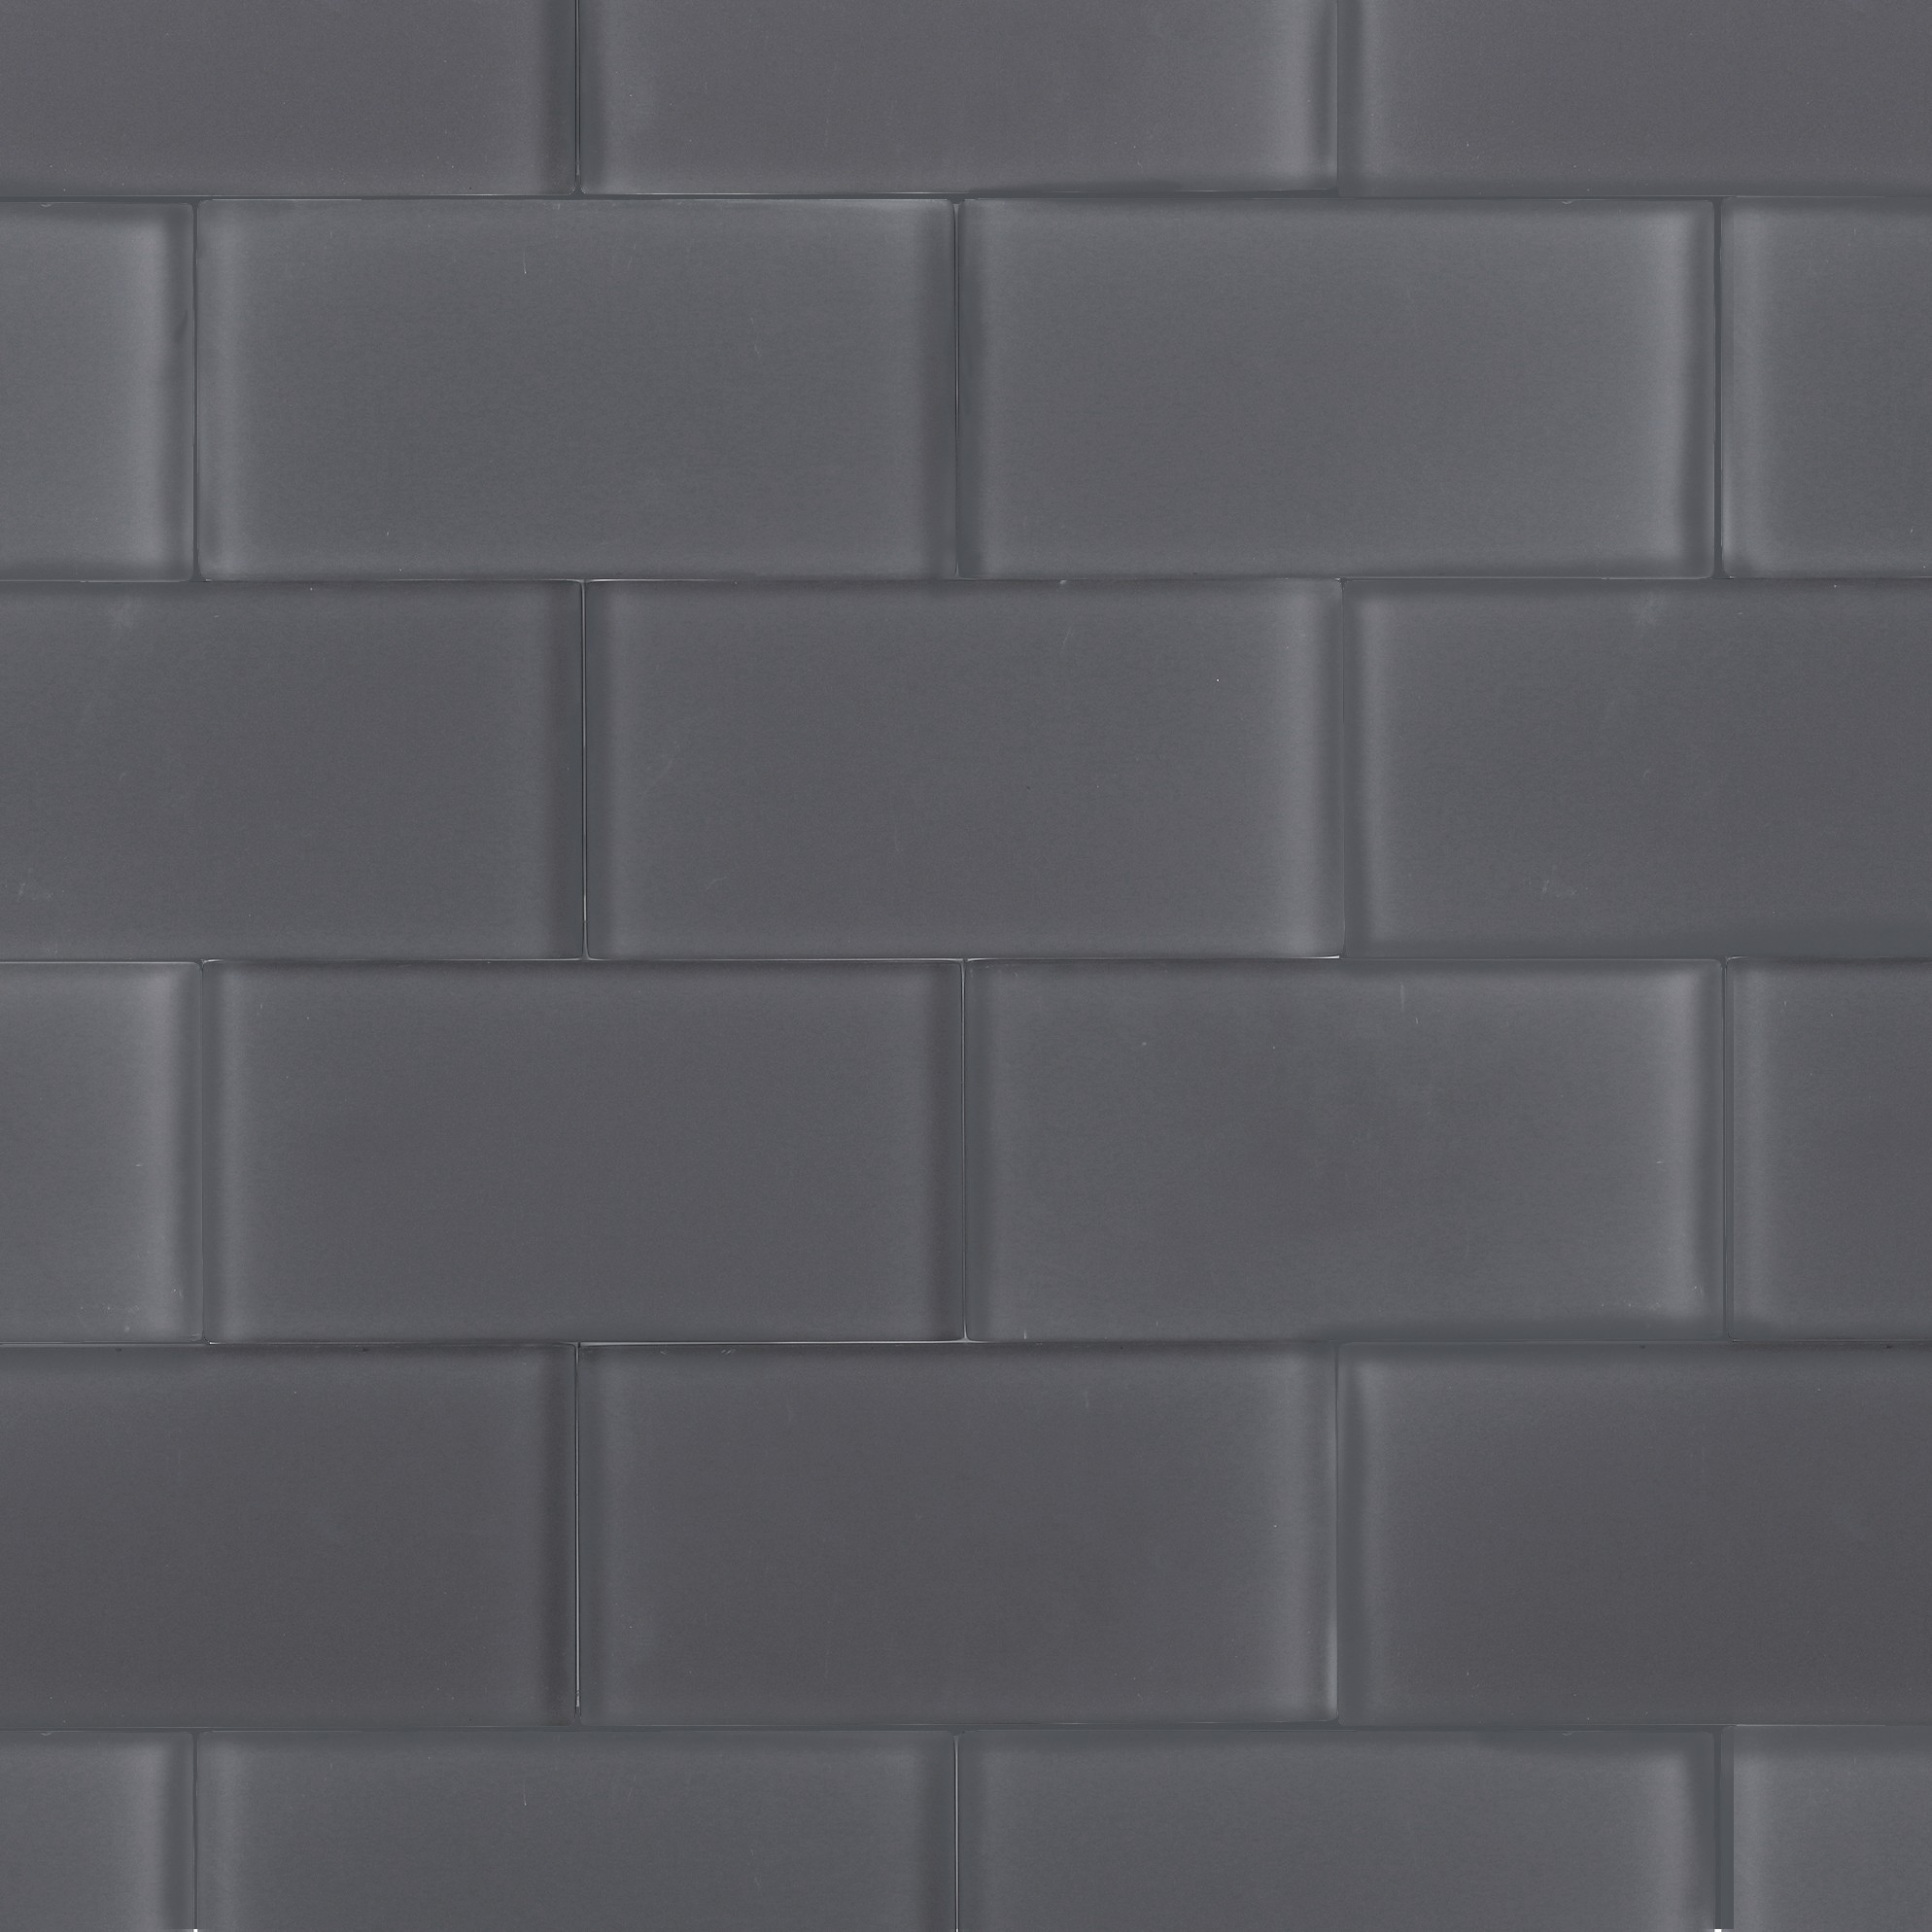 21 Best Images About Frosted Glass Tile Kitchen On: Loft Ash Gray Frosted 3x6 Glass Tile